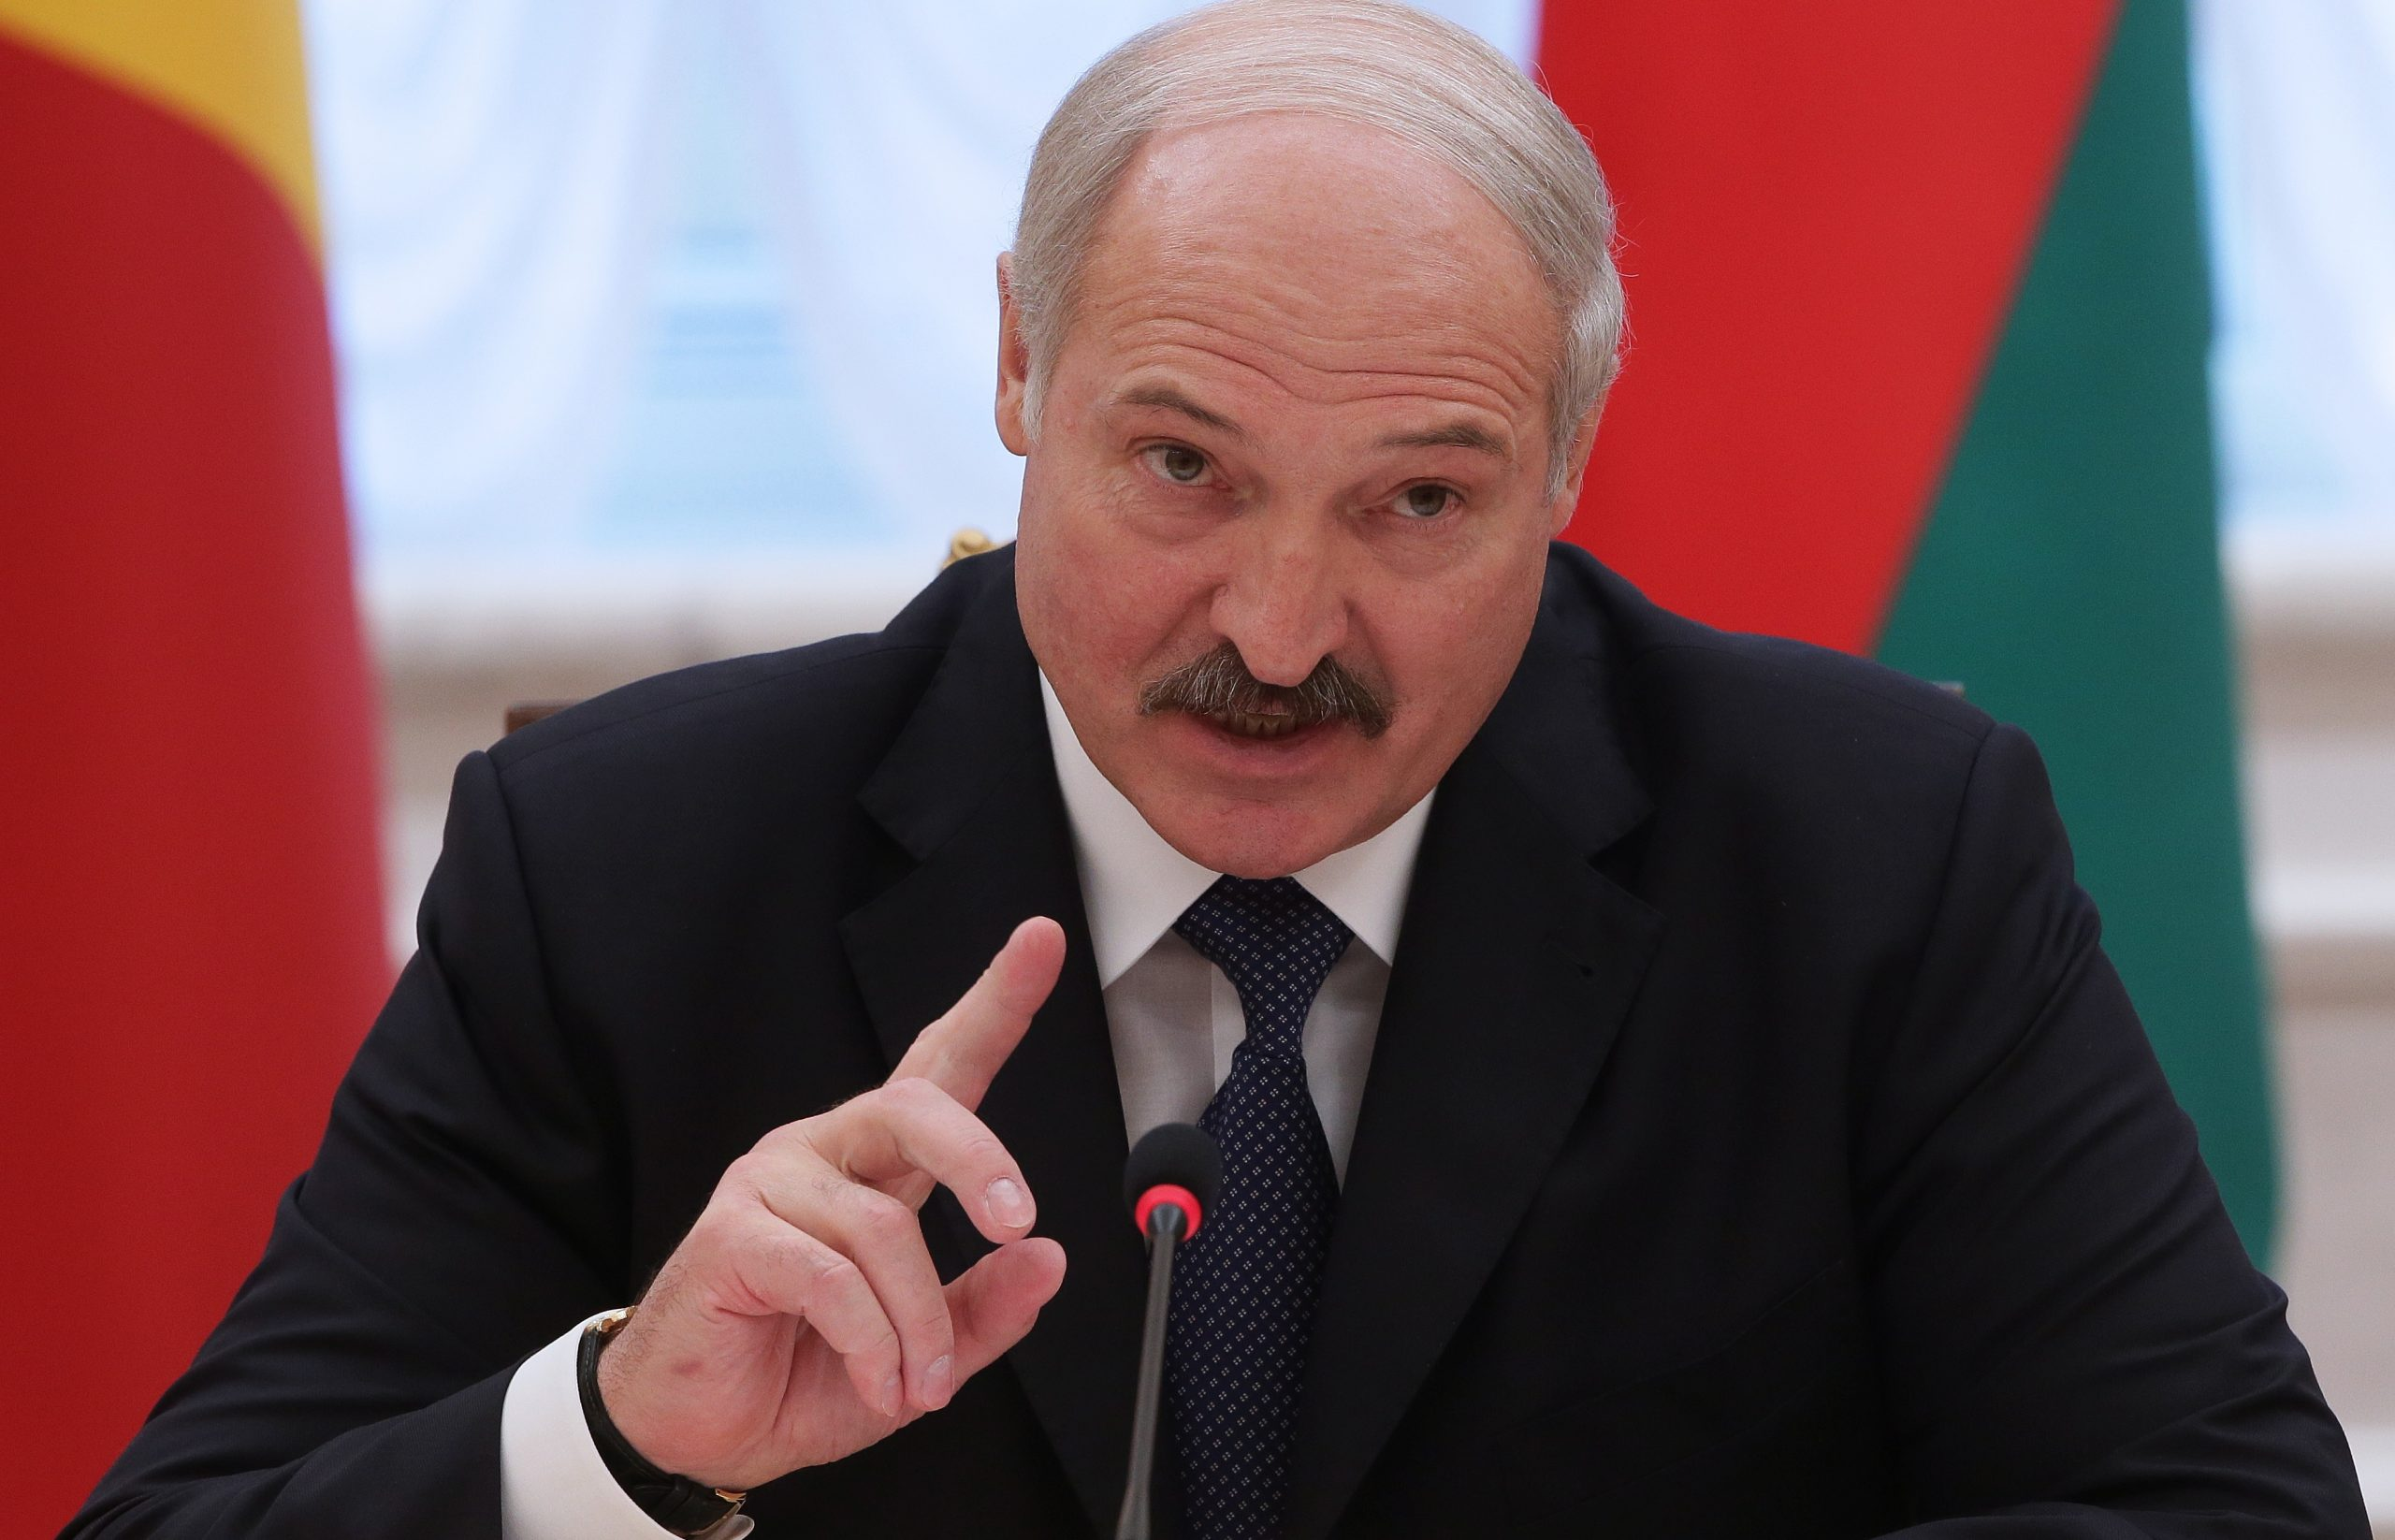 Lukashenko says Belarus and Russia can fully provide themselves with everything they need